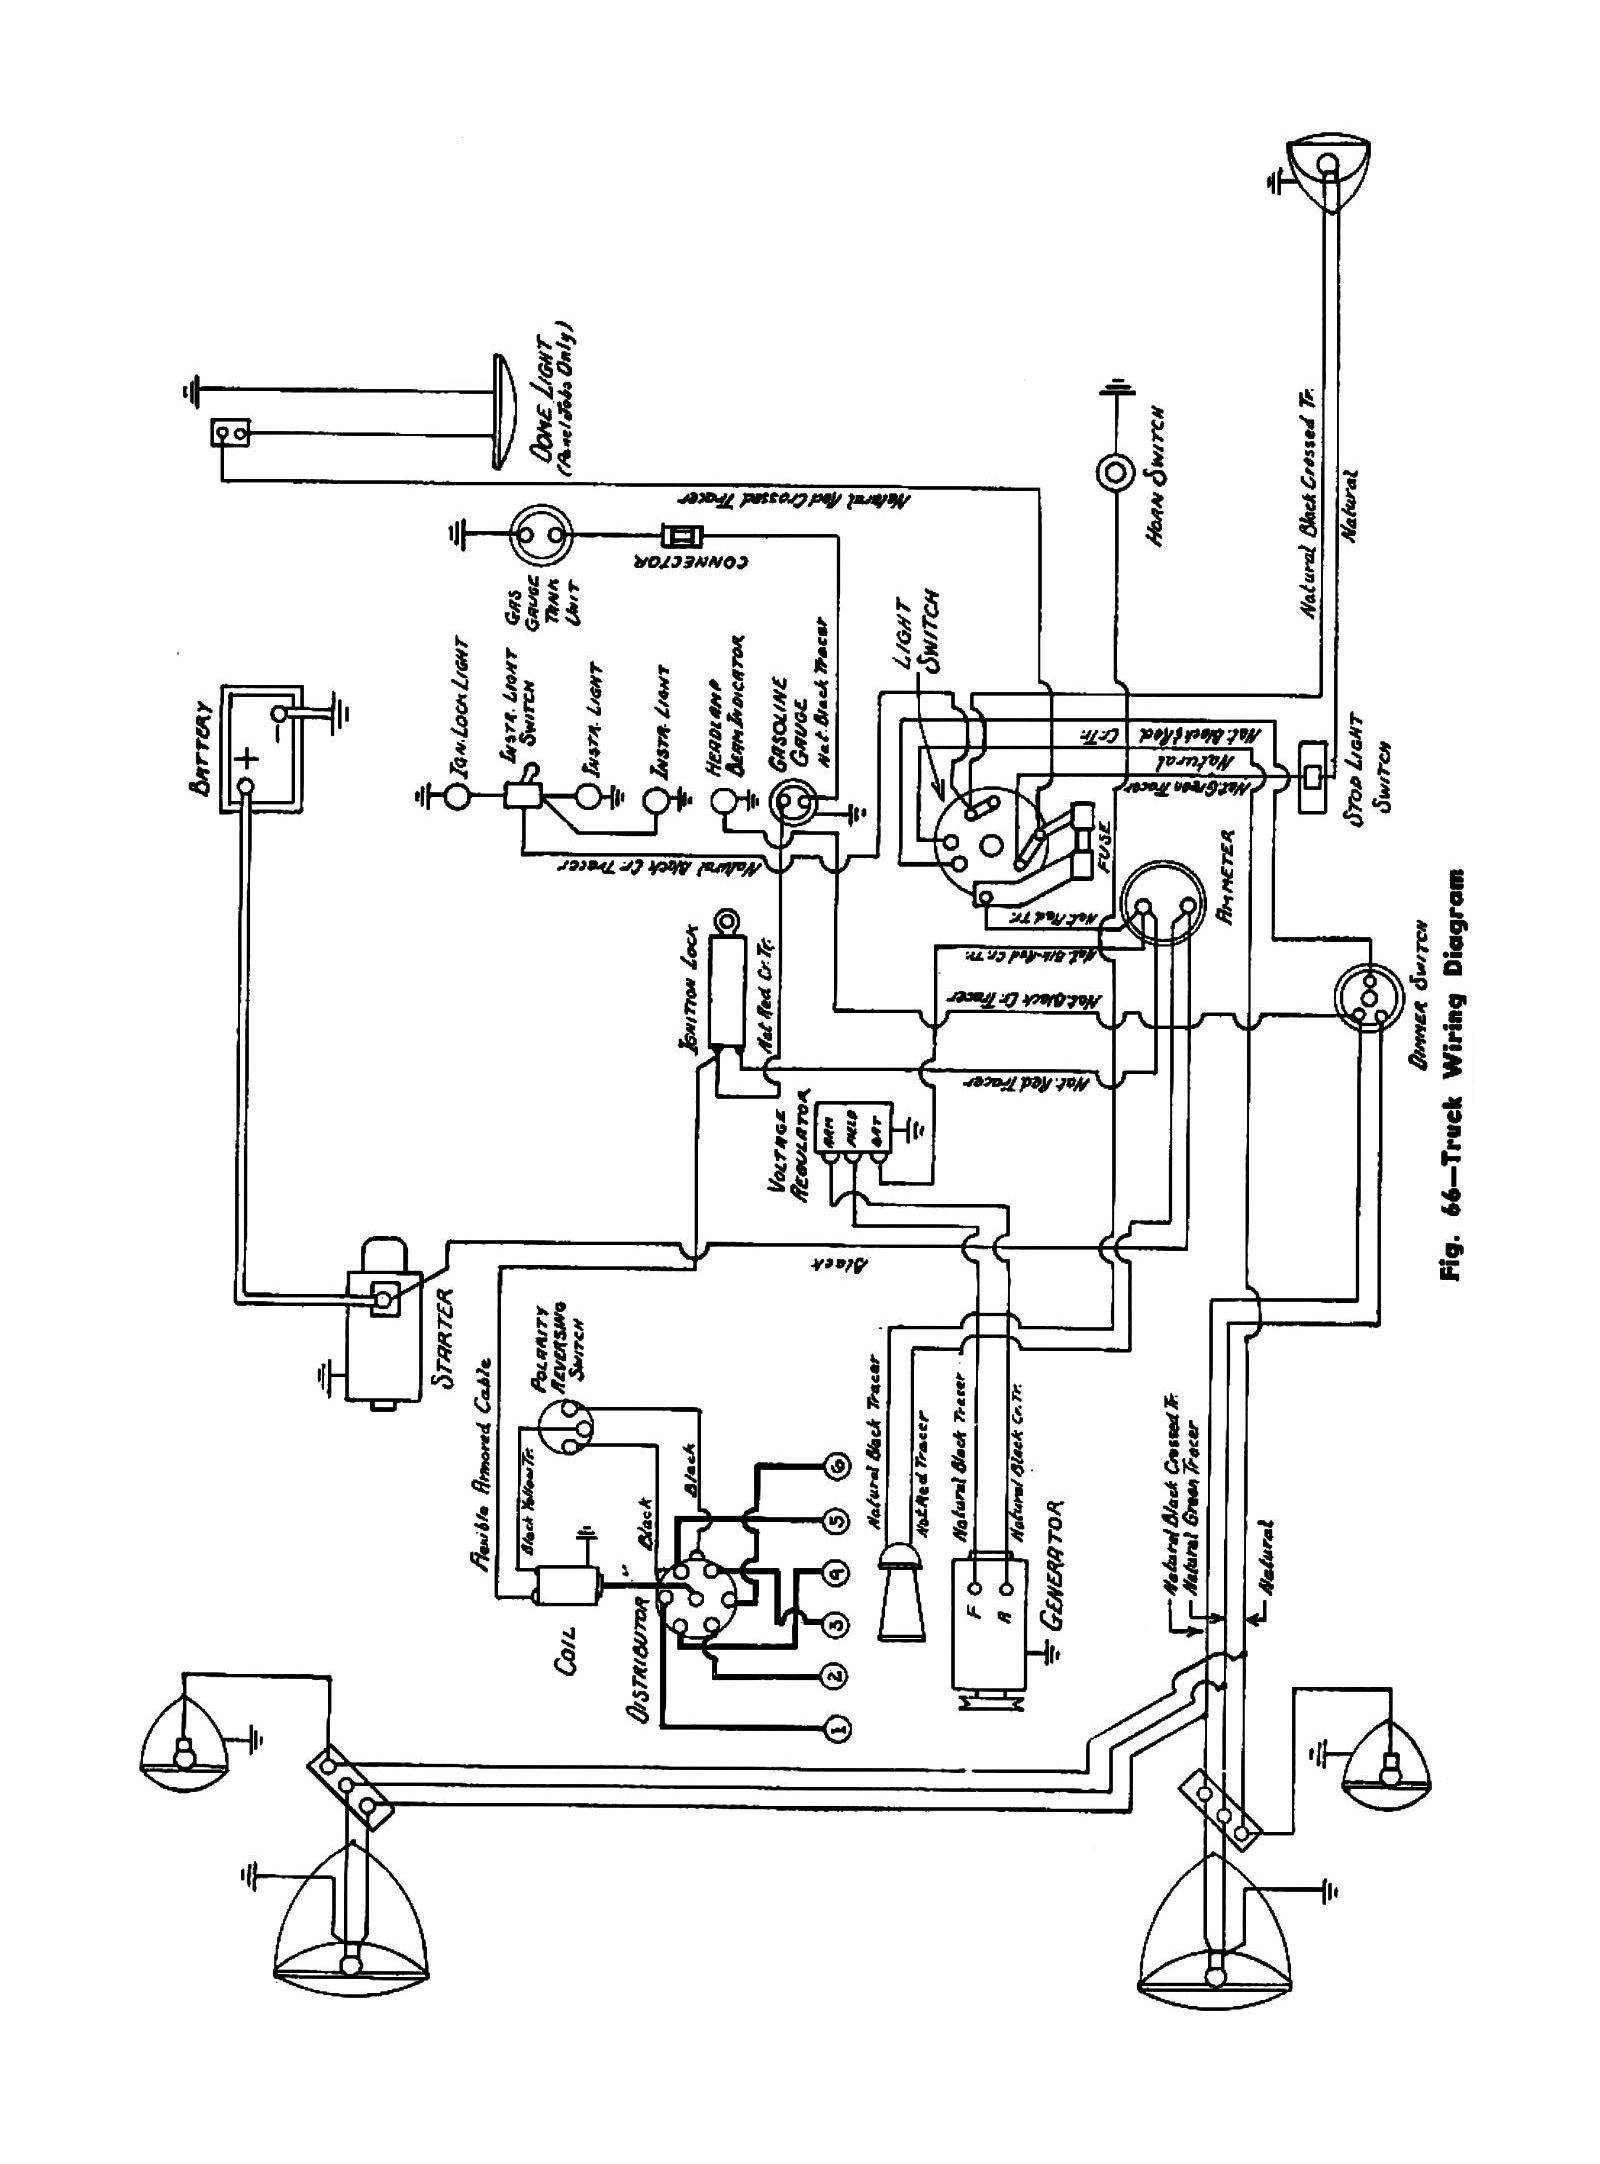 45truck ihc truck wiring diagrams mazda truck wiring diagrams \u2022 free International 4300 Wiring Diagram Schematics at mr168.co